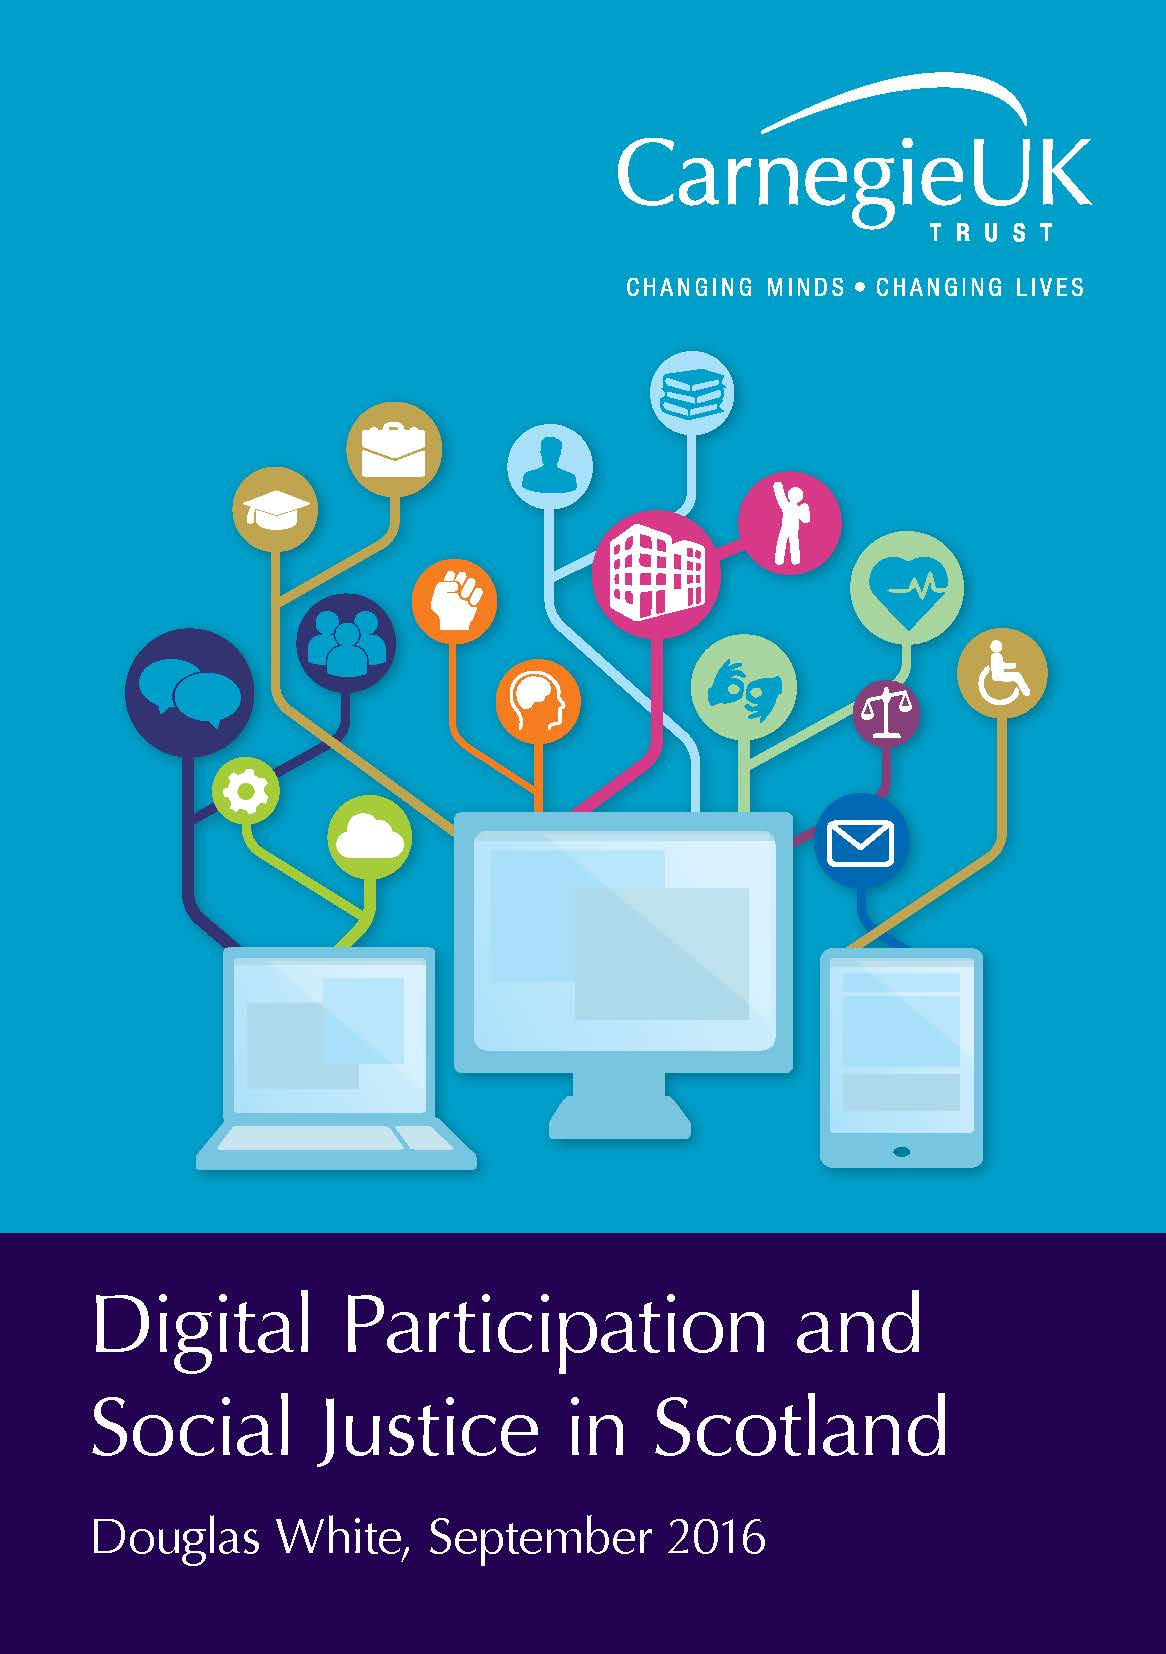 Digital Participation and Social Justice in Scotland